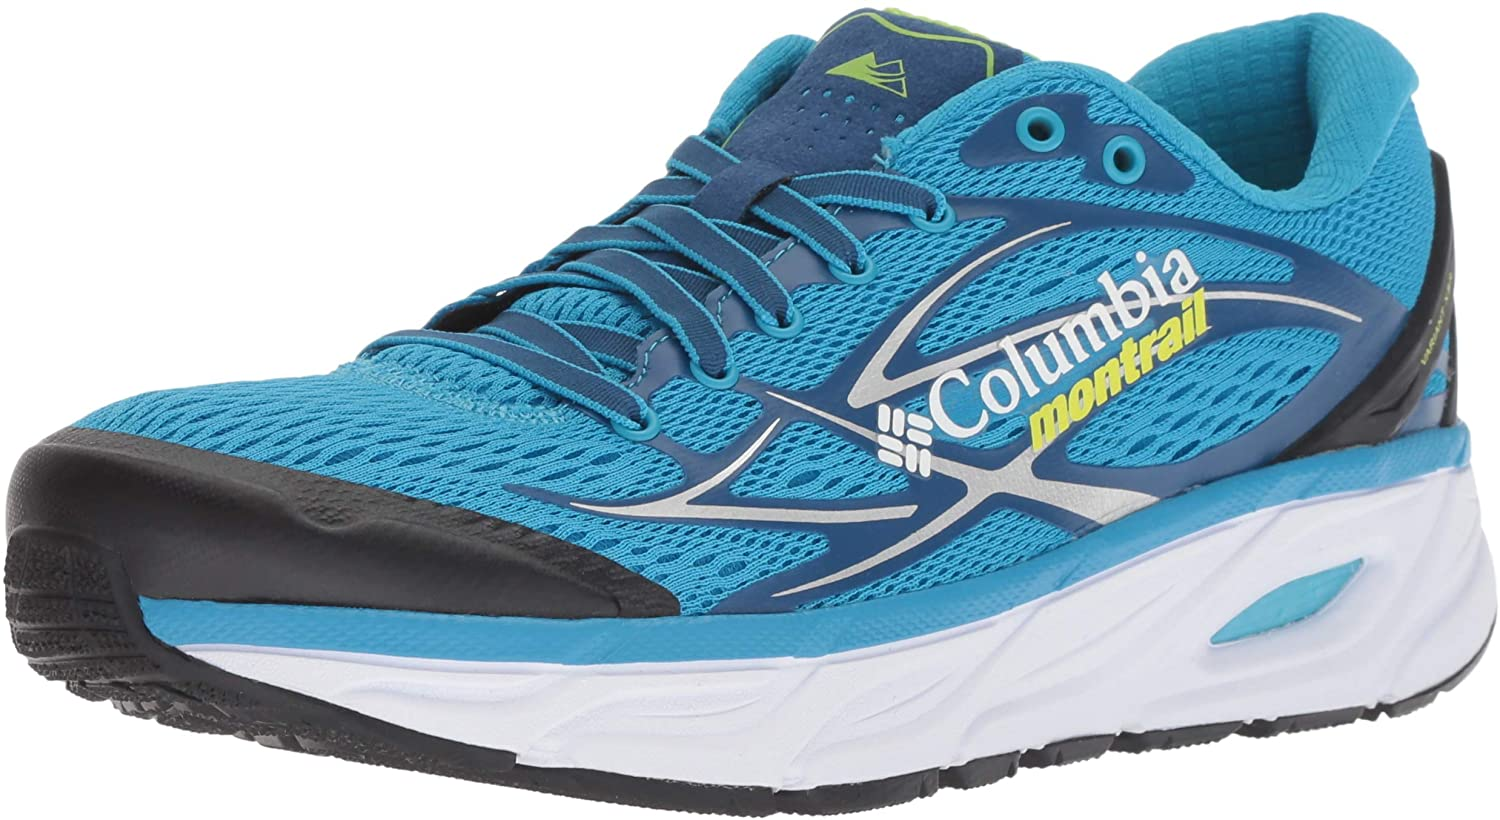 Columbia Men's Variant X.S.R. Trail Running Shoe, Blue chill, Fission, 10.5 D US